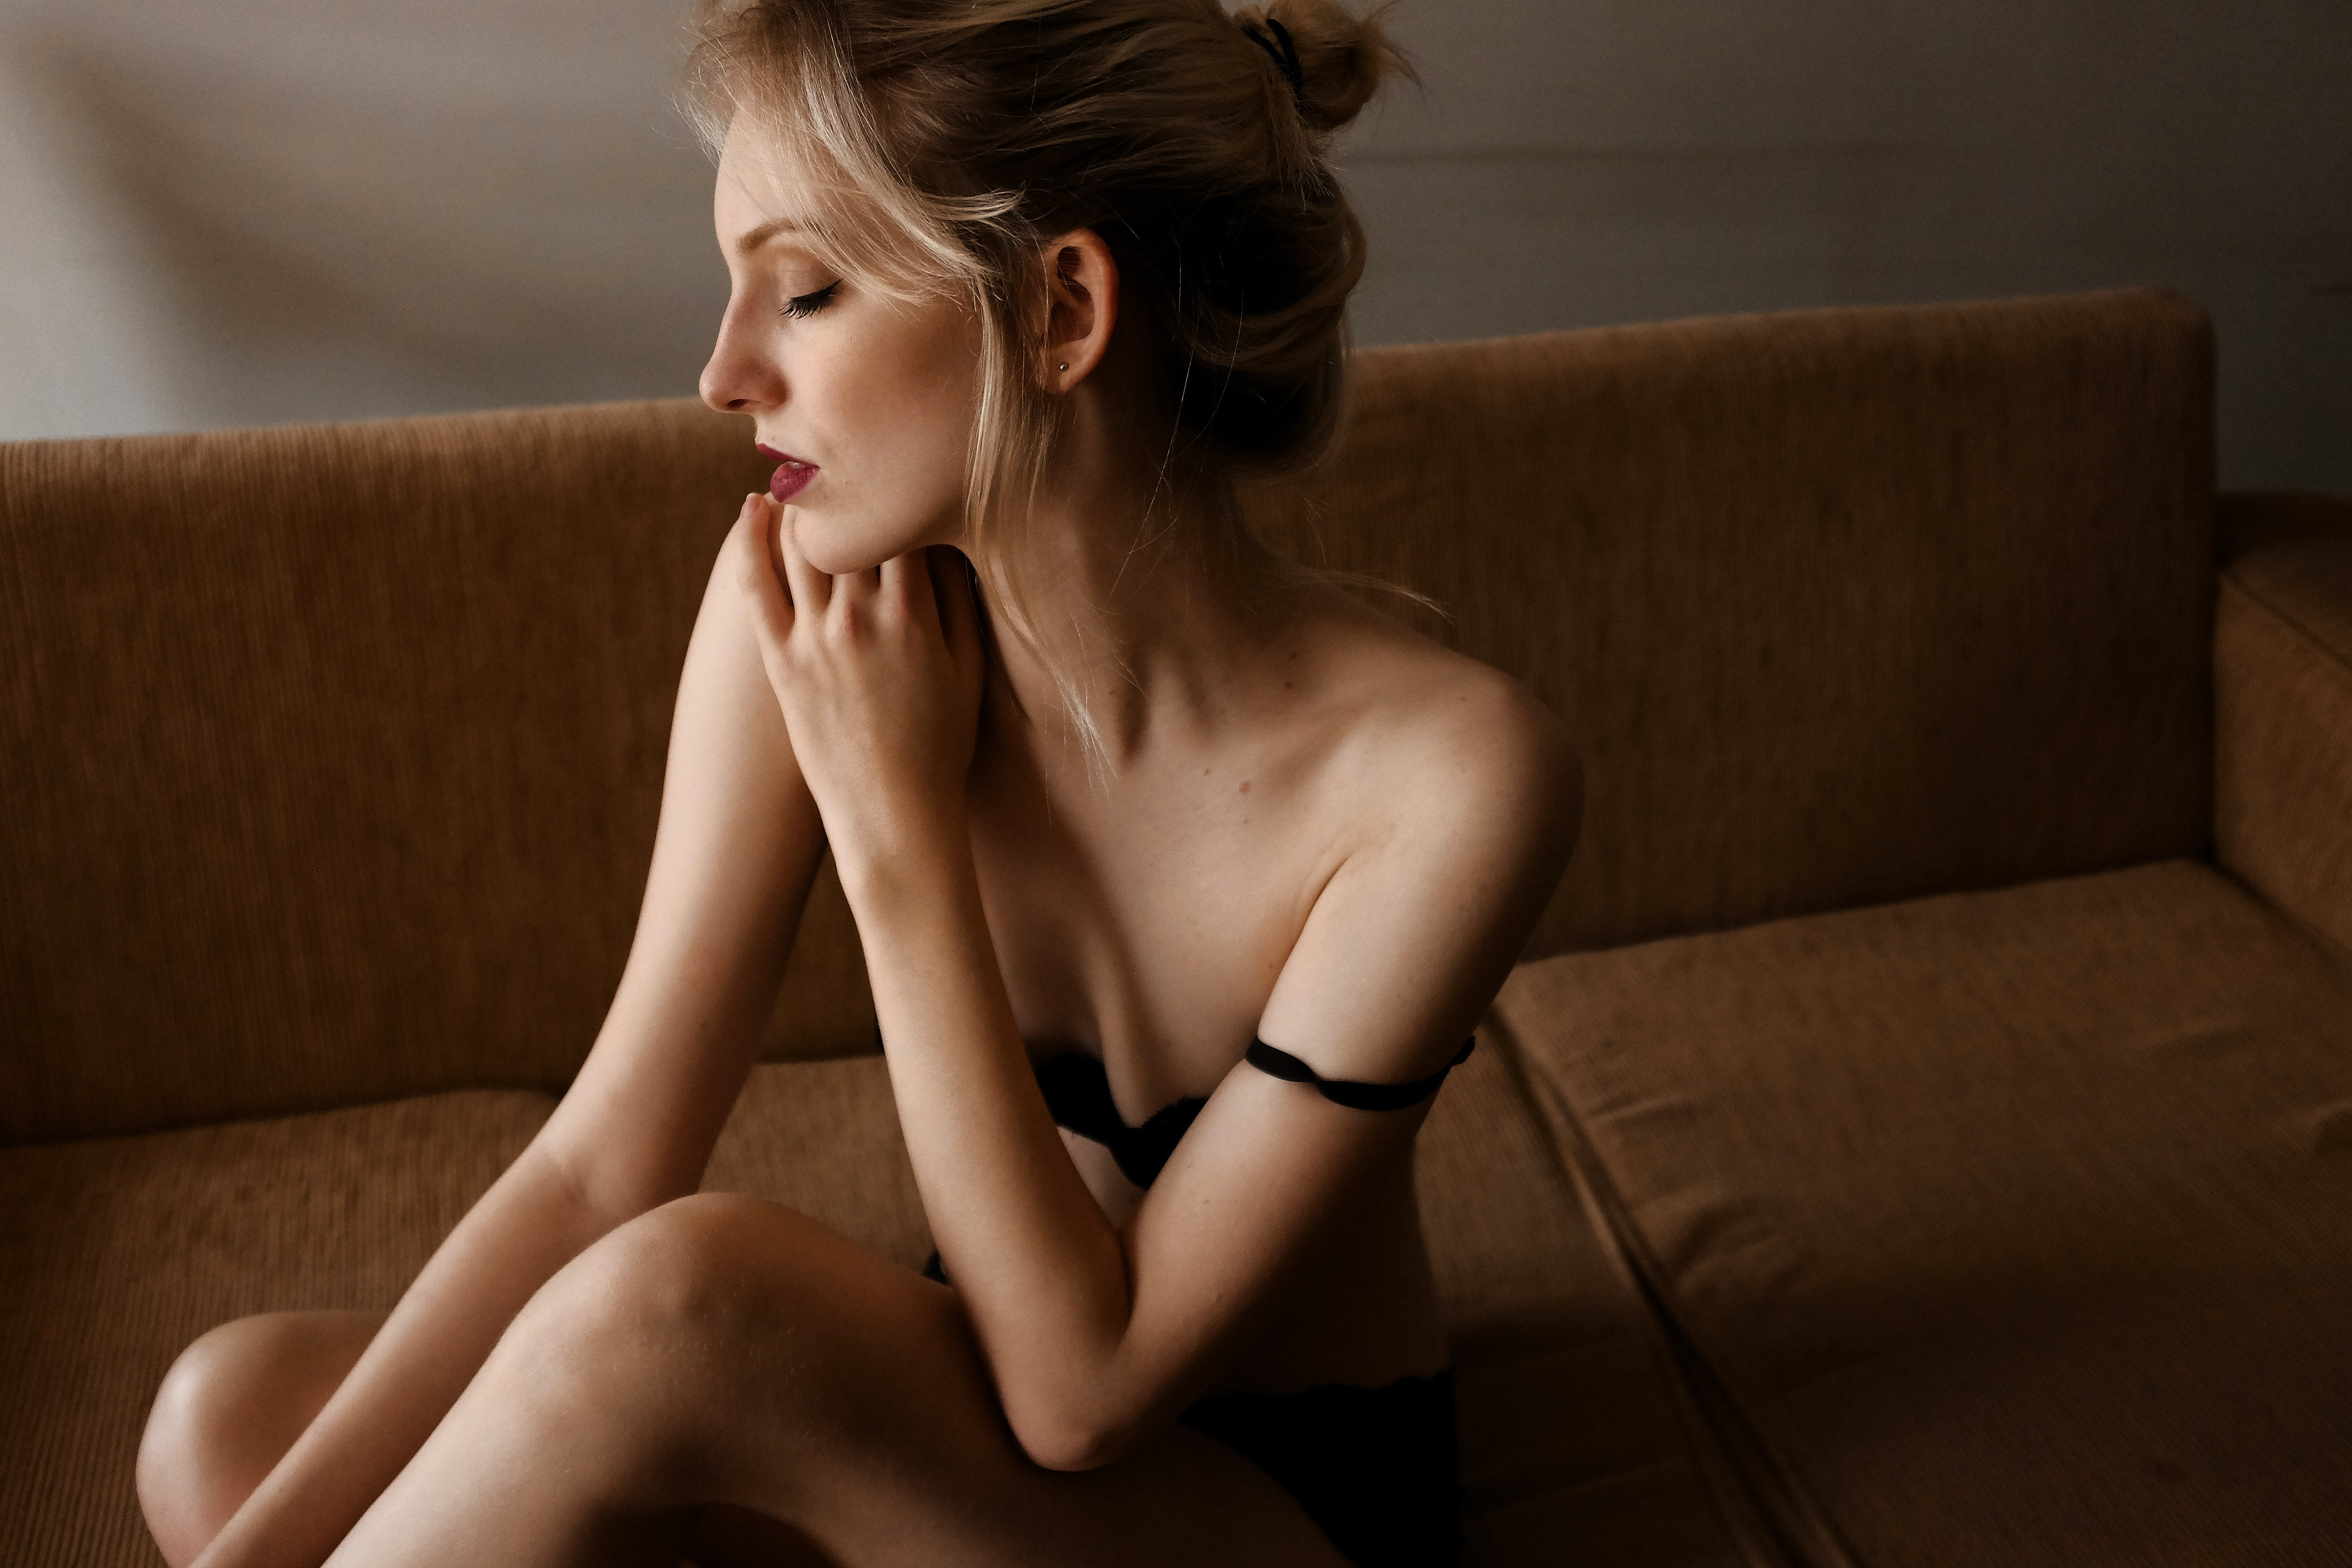 Woman poses seductively with eyes closed wearing in lingerie on her couch